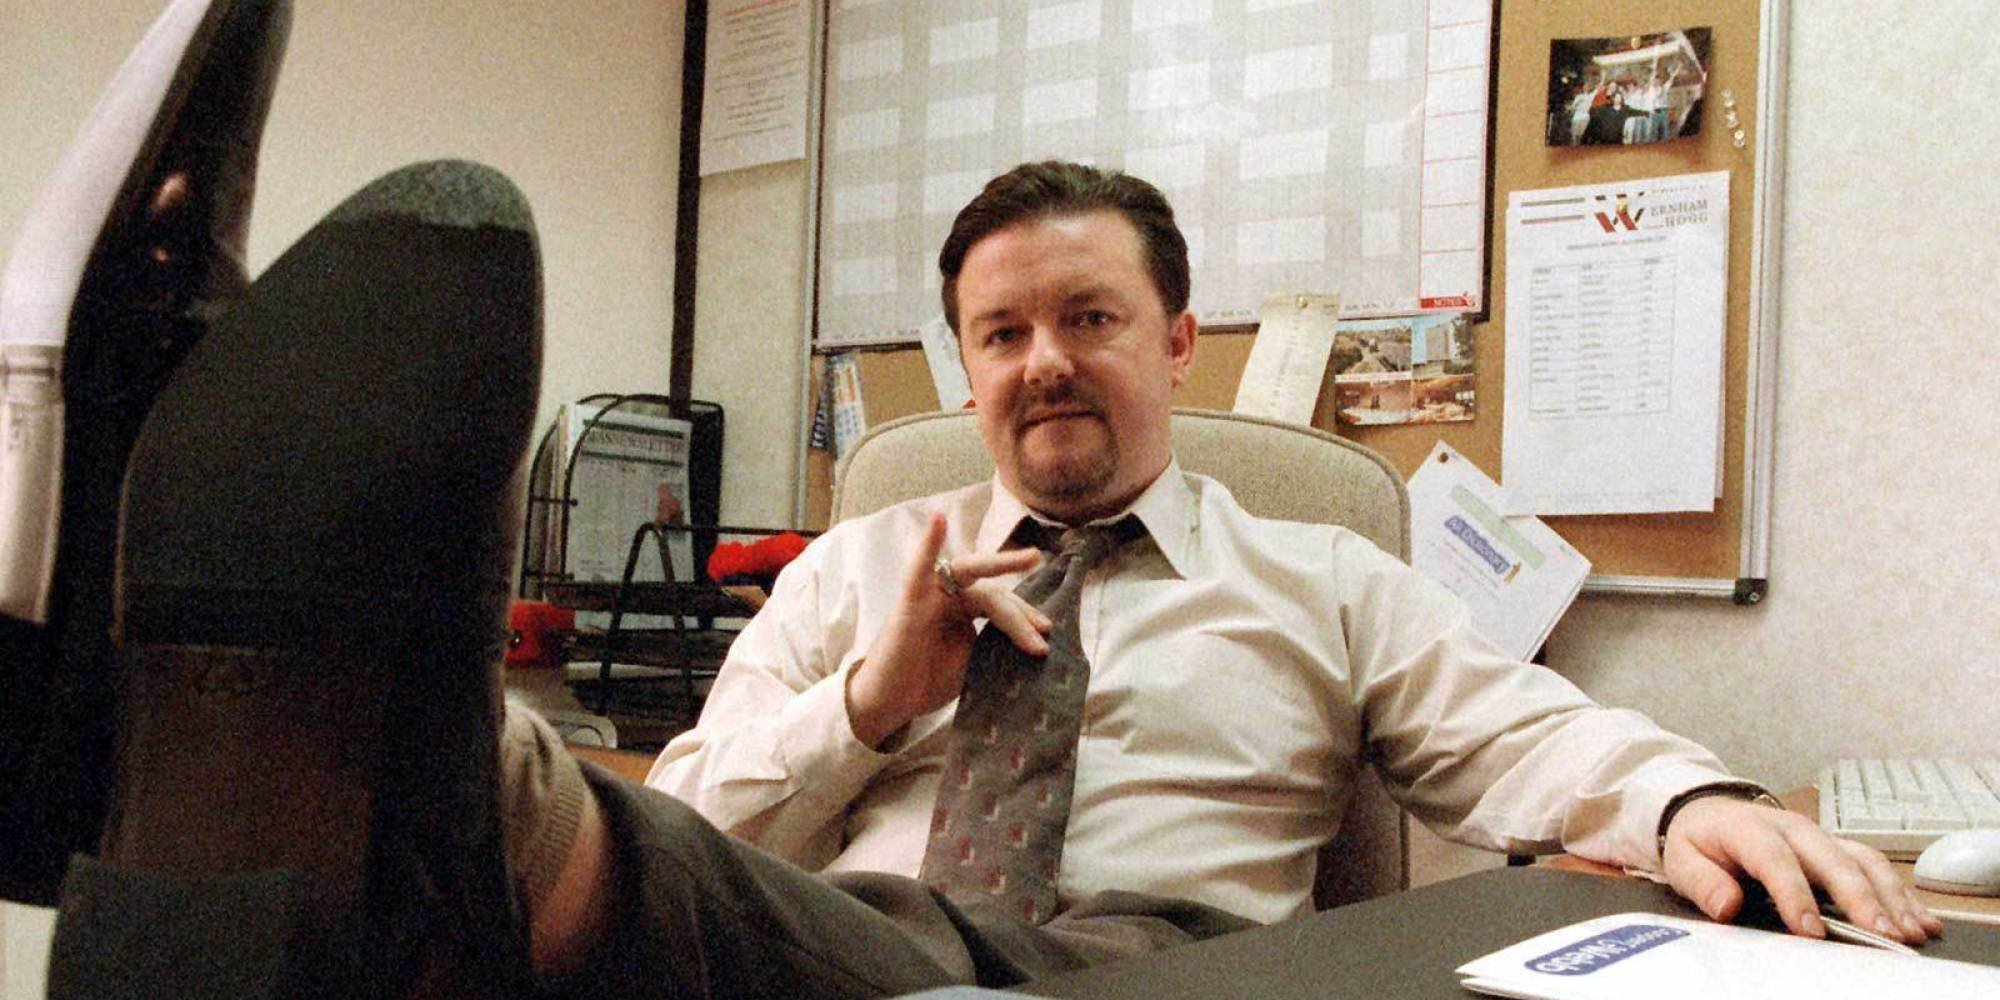 Who said it: David Brent or Ricky Gervais? Credit: BBC